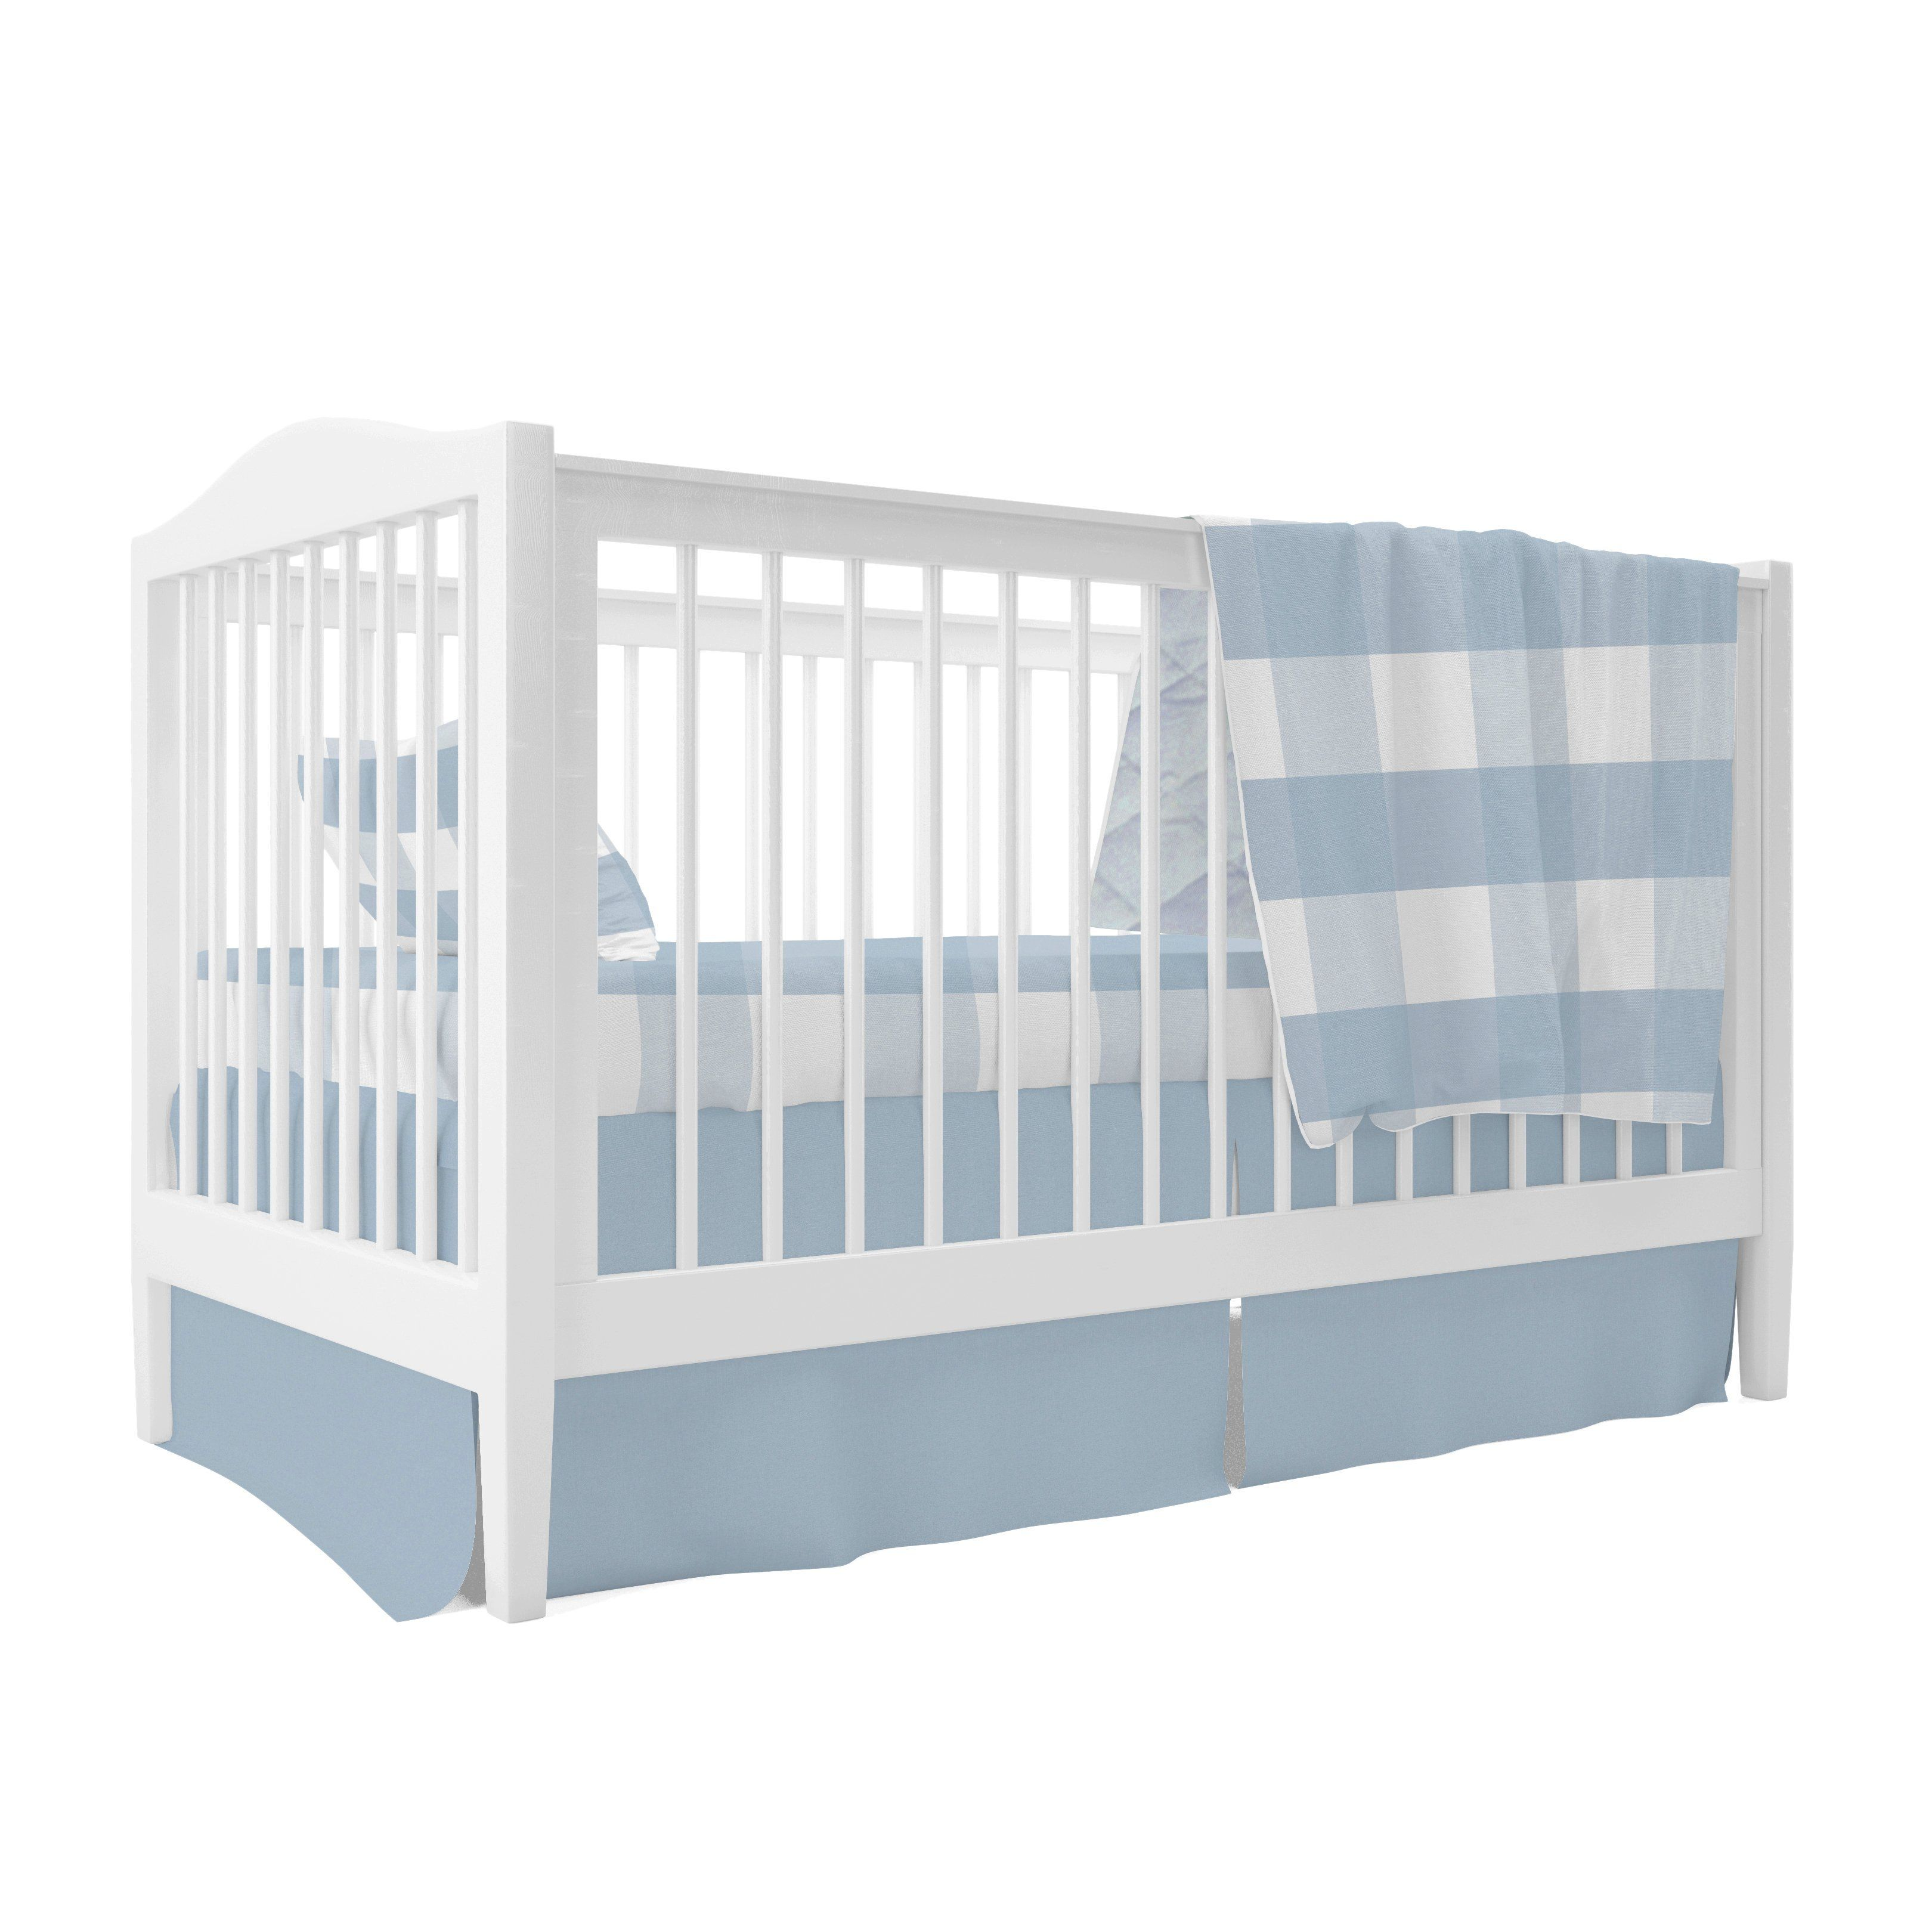 Baby Cradle Dimensions Four Piece Baby Crib Set I Dusty Blue Gingham Design